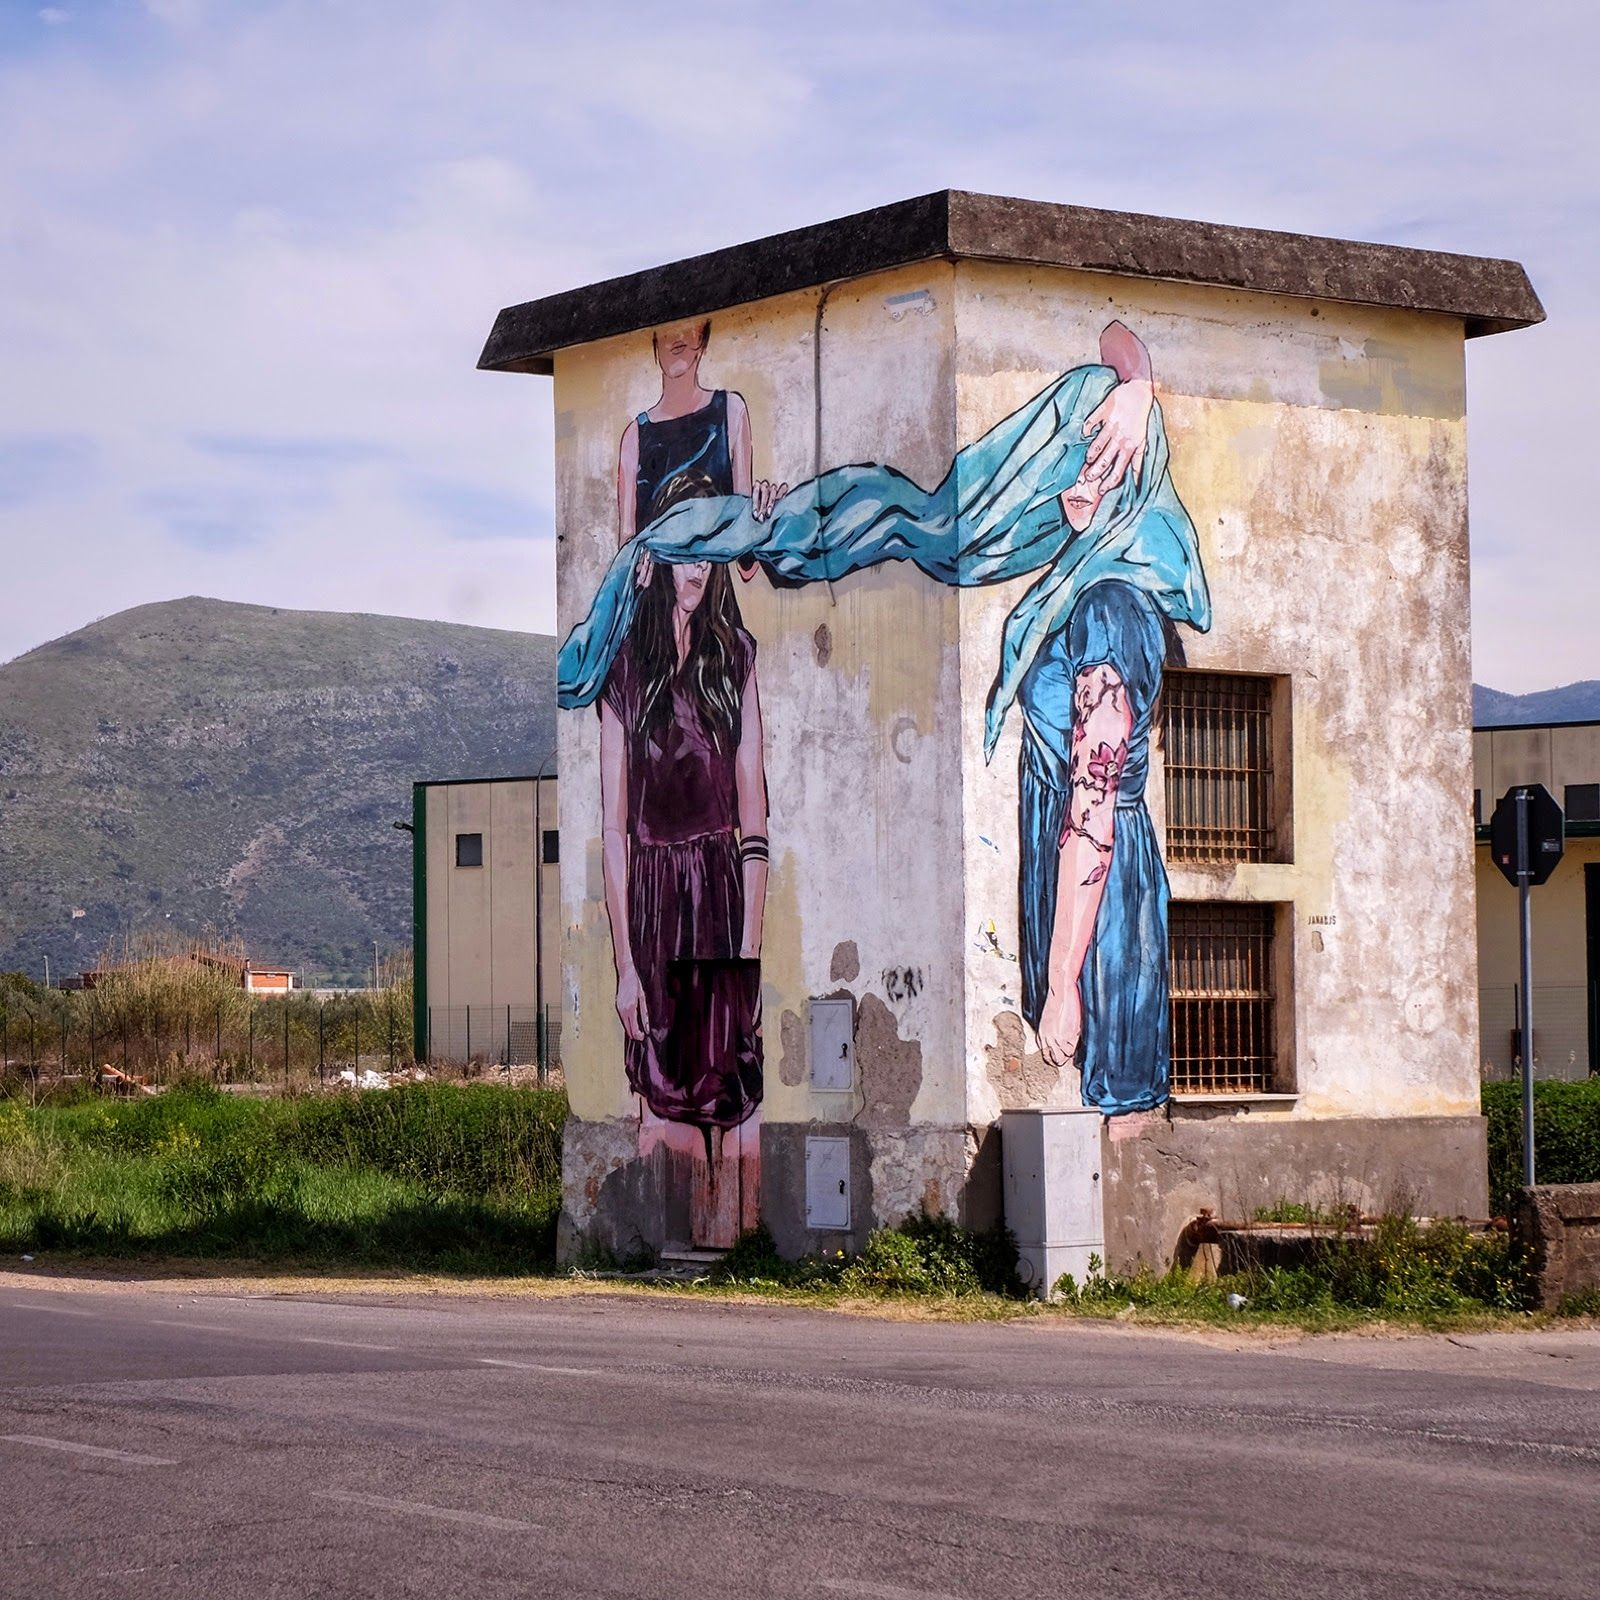 New pieces by Jana & Js in Gaeta, Italy for Memorie Urbane '15